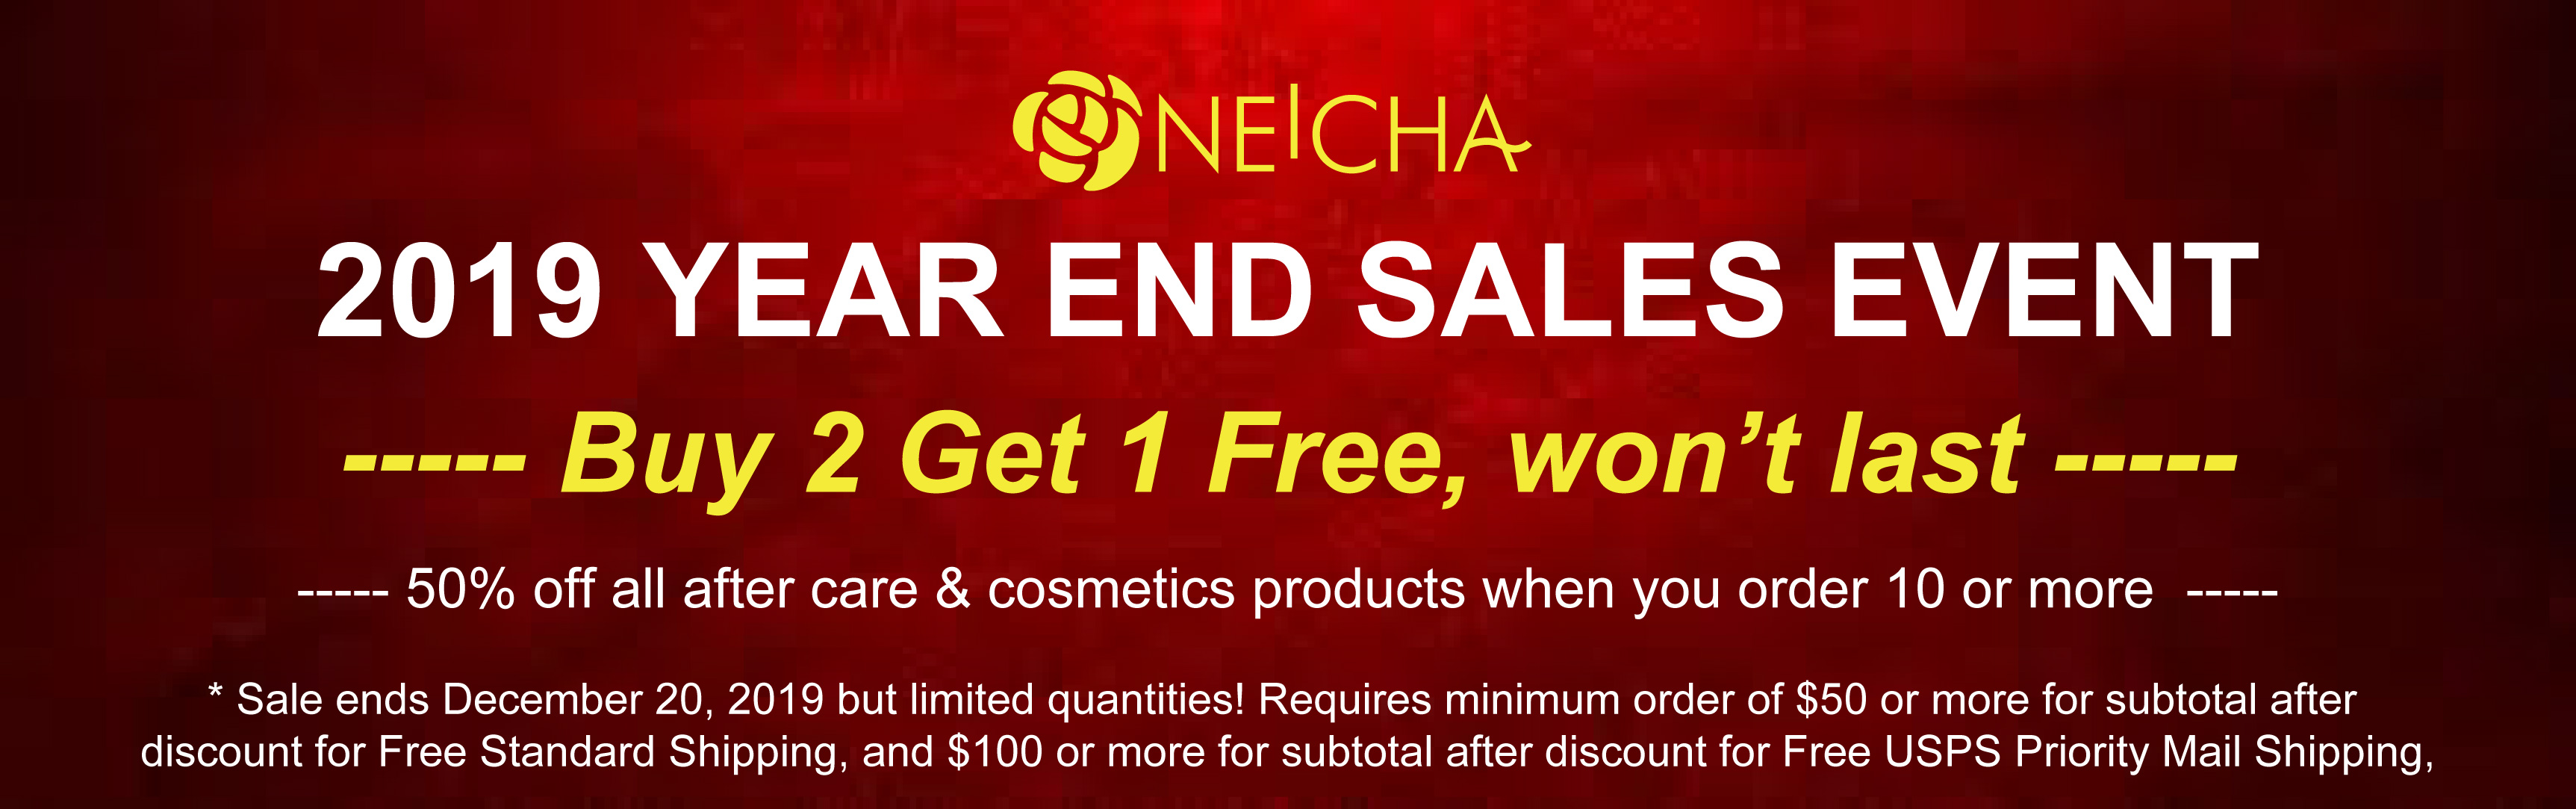 2019-year-end-sales-event-banner.jpg